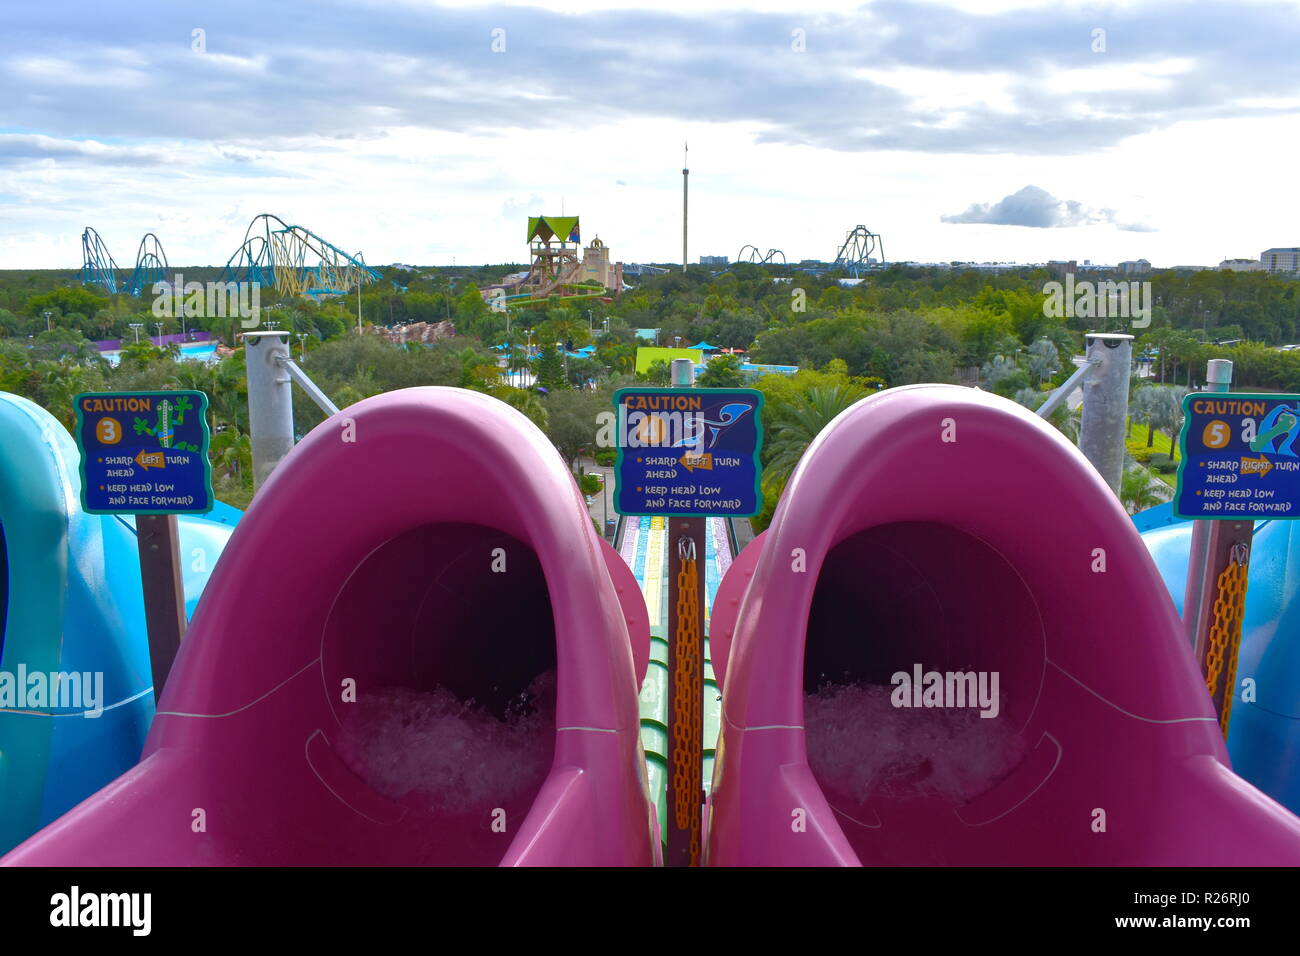 Orlando, Florida. October 26, 2018. Colorful slides water ride attraction with top view of Seaworld and Aquatica Parks on cloudy sky background. - Stock Image